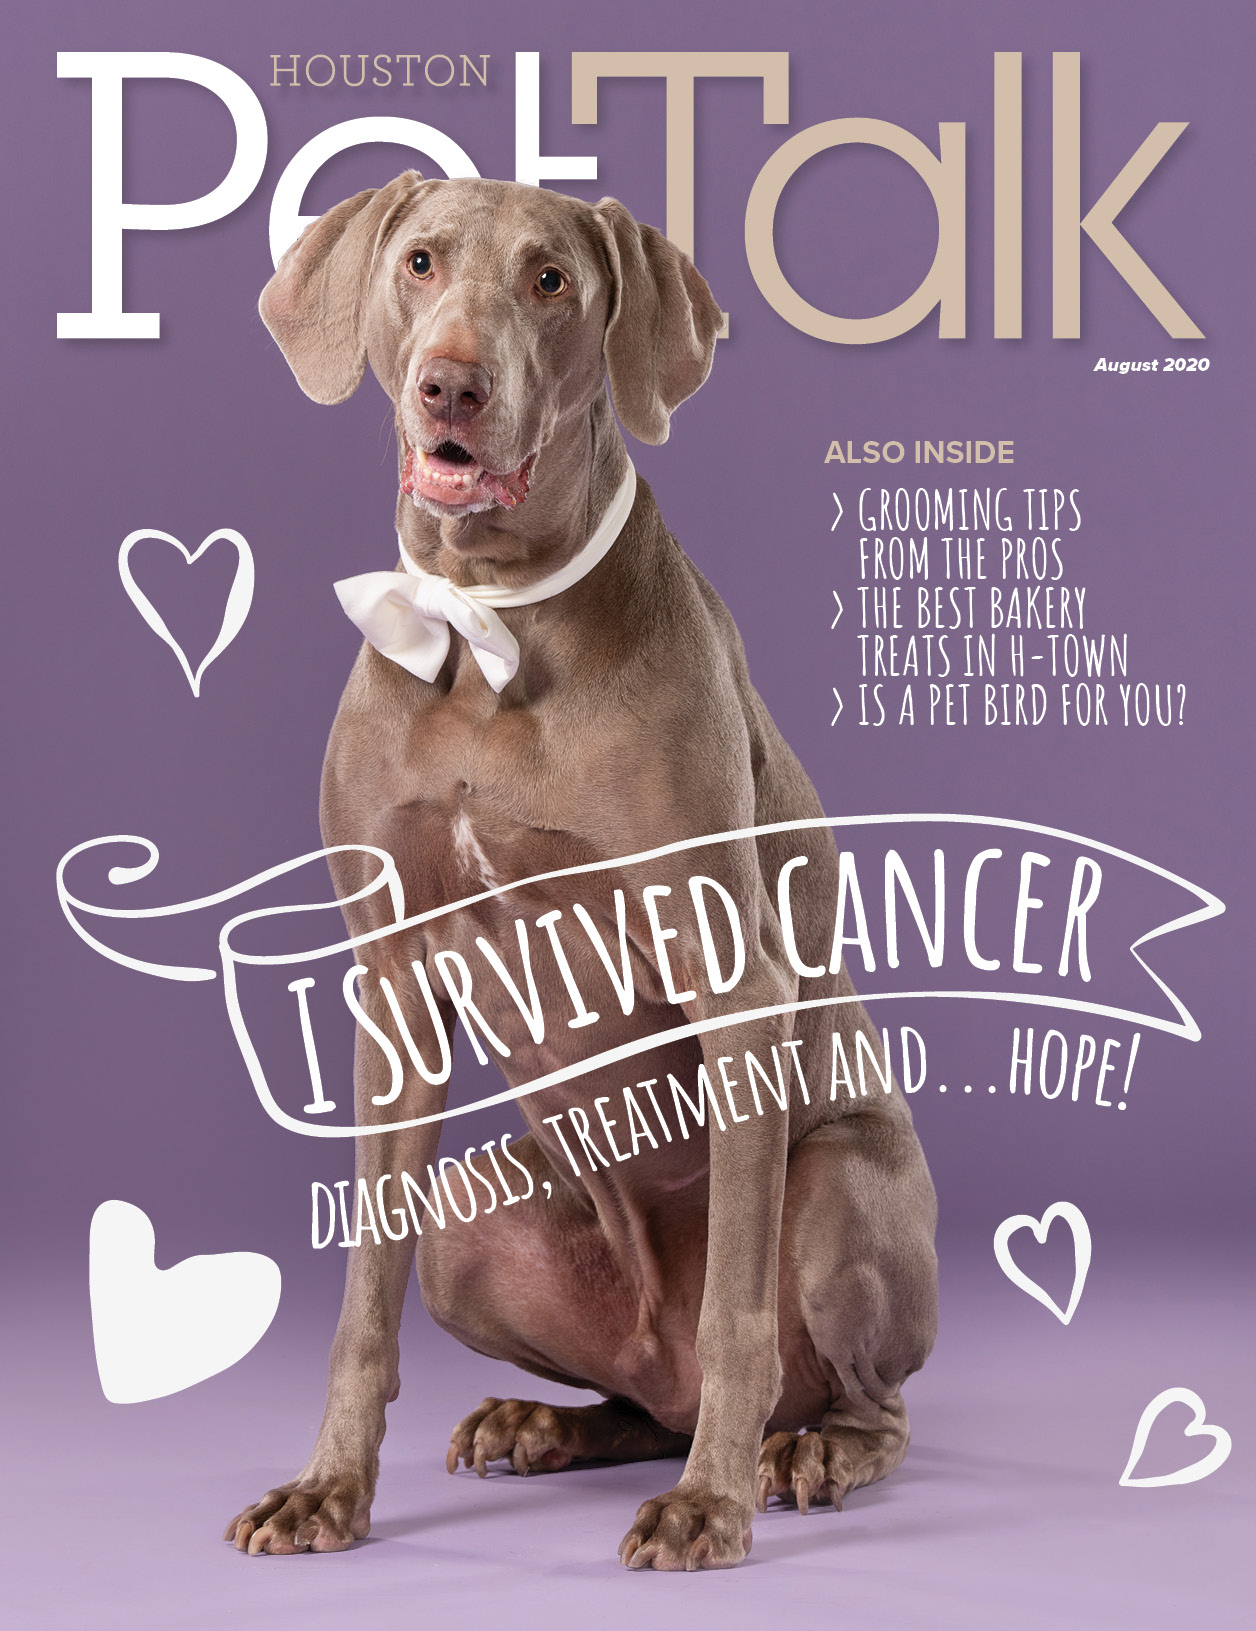 August 2020 Digital Issue of Houston PetTalk